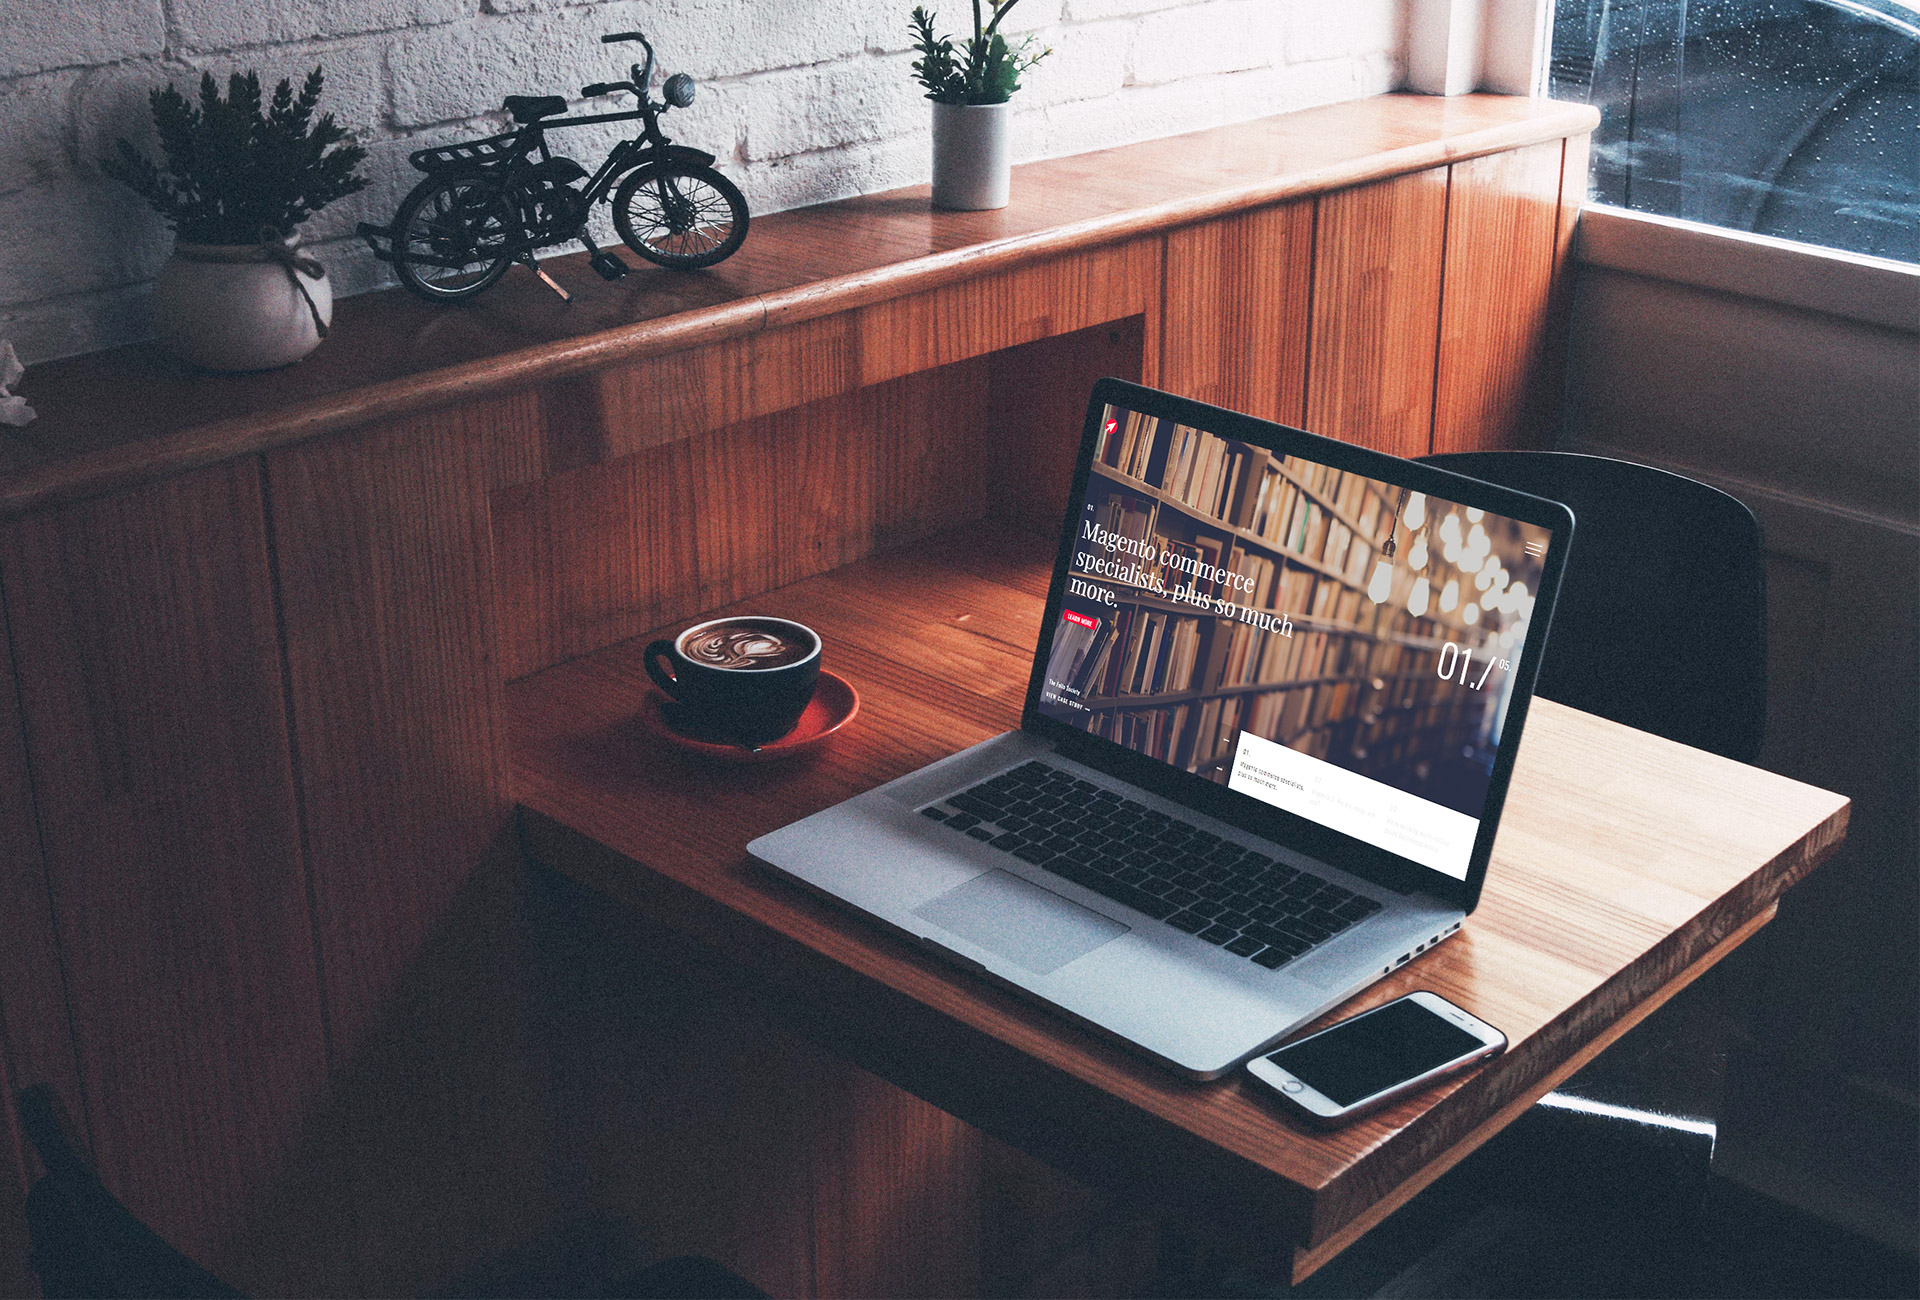 laptop on wooden table, with cup of coffee and mobile phone